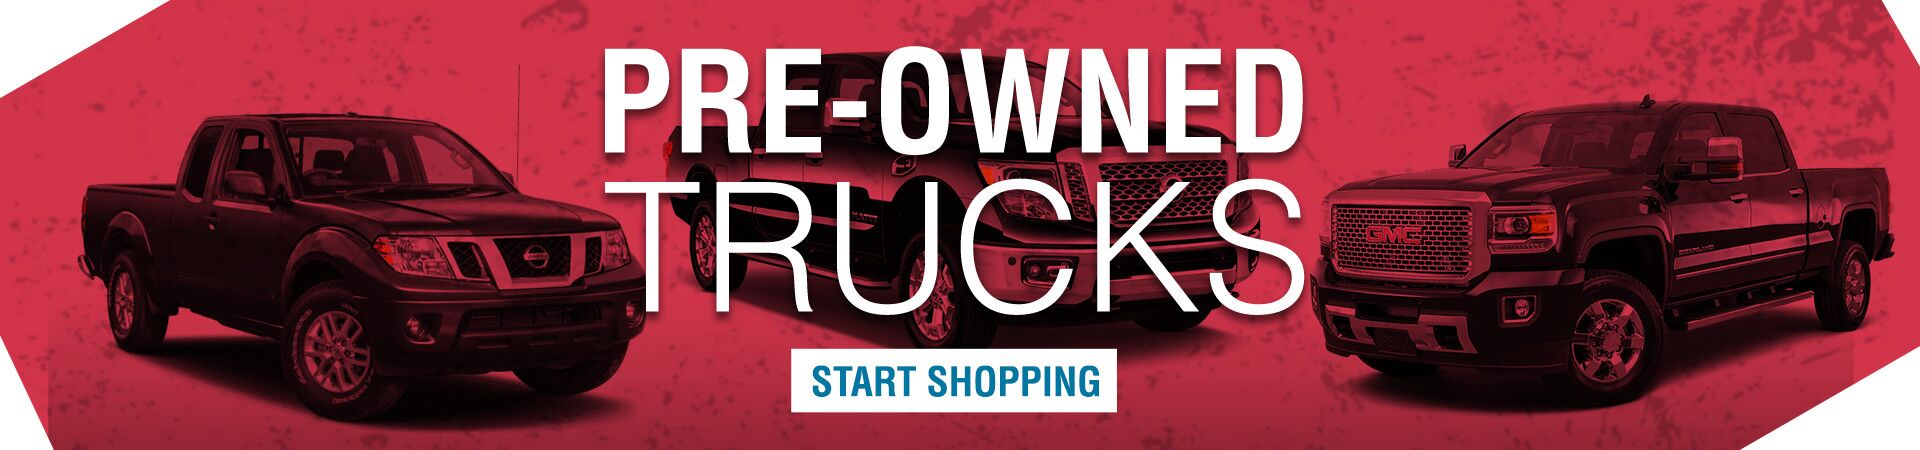 Preowned Trucks